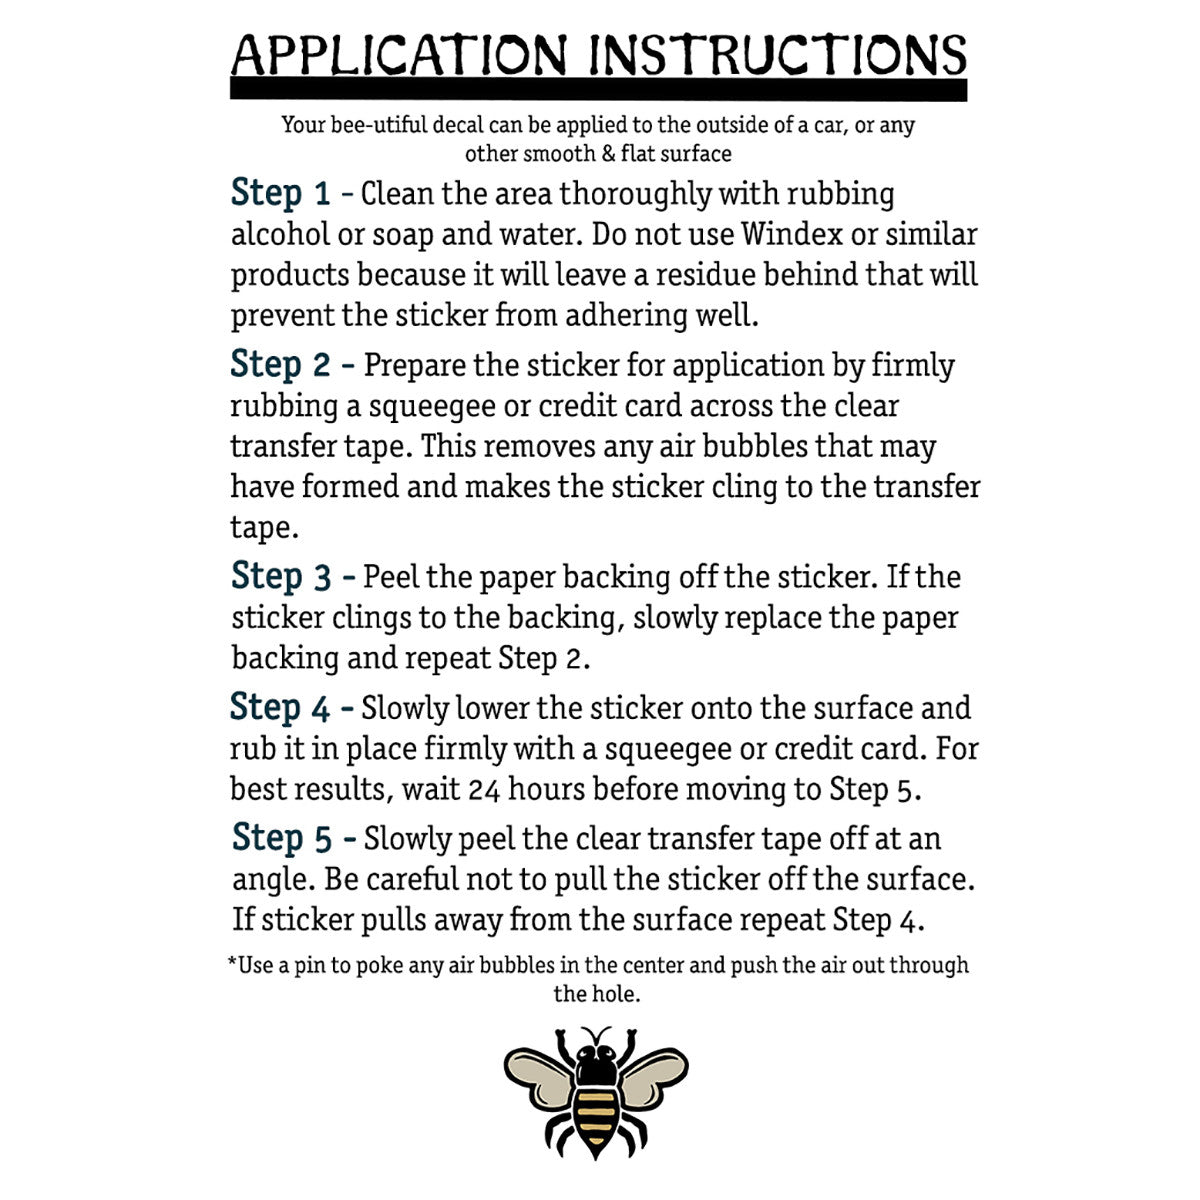 Brit and Bee Beecal Application Instructions